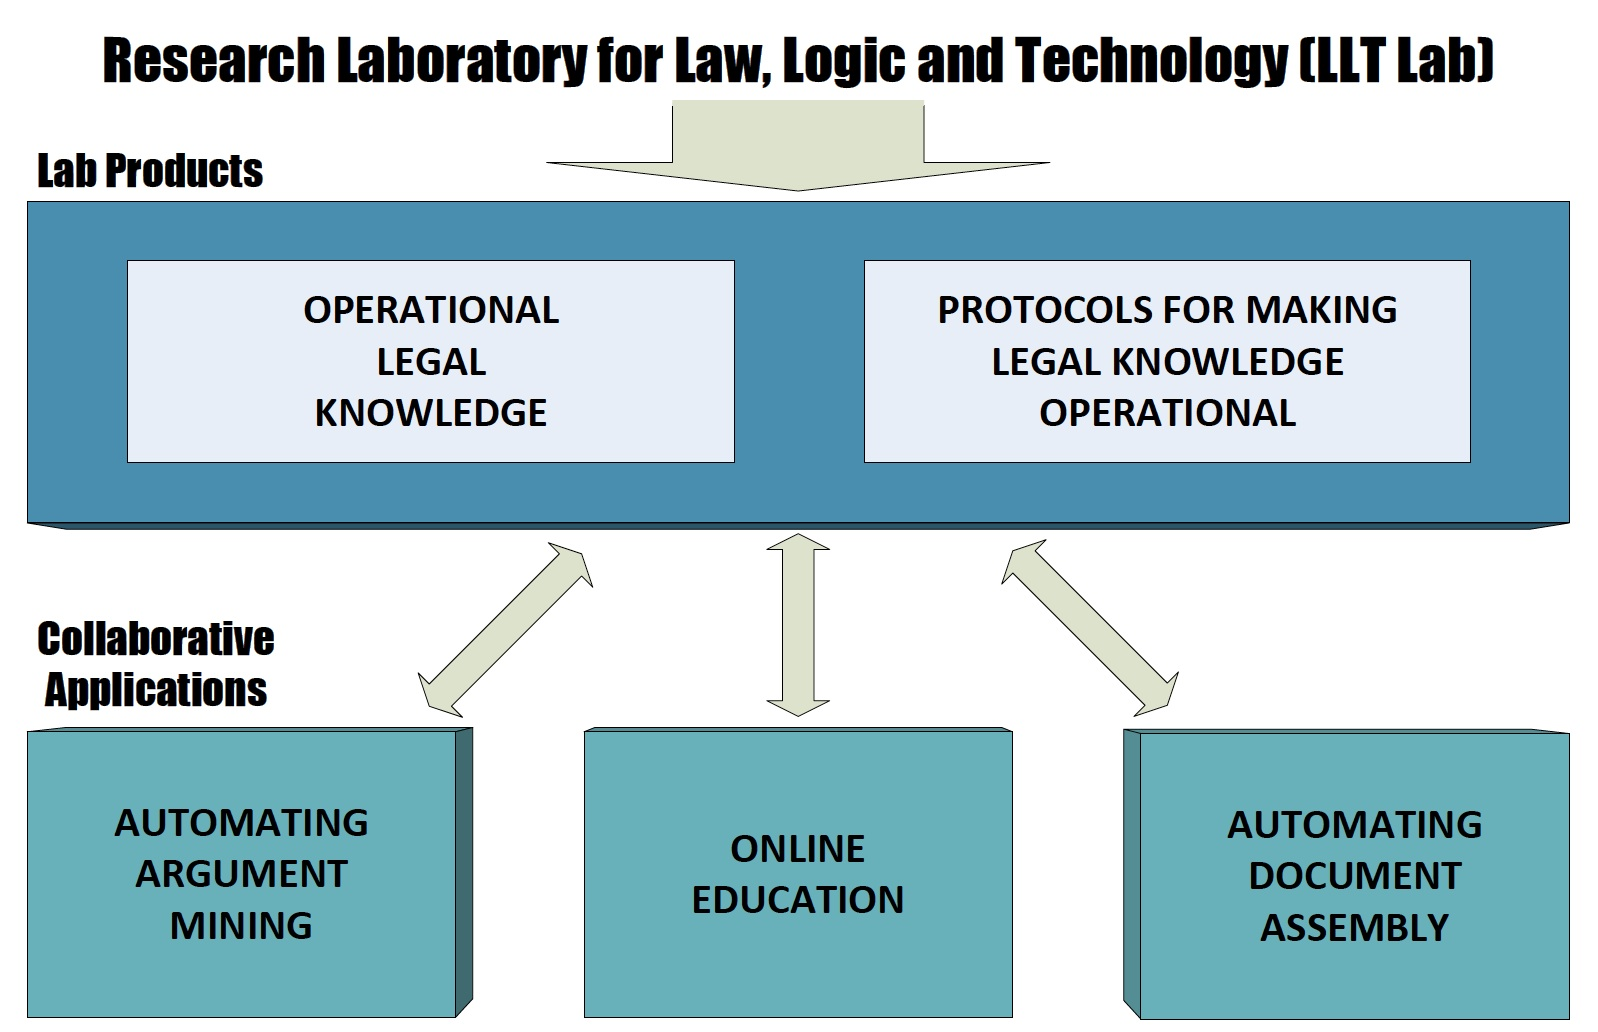 About Law Logic Technology Research Lab - Legal document assembly